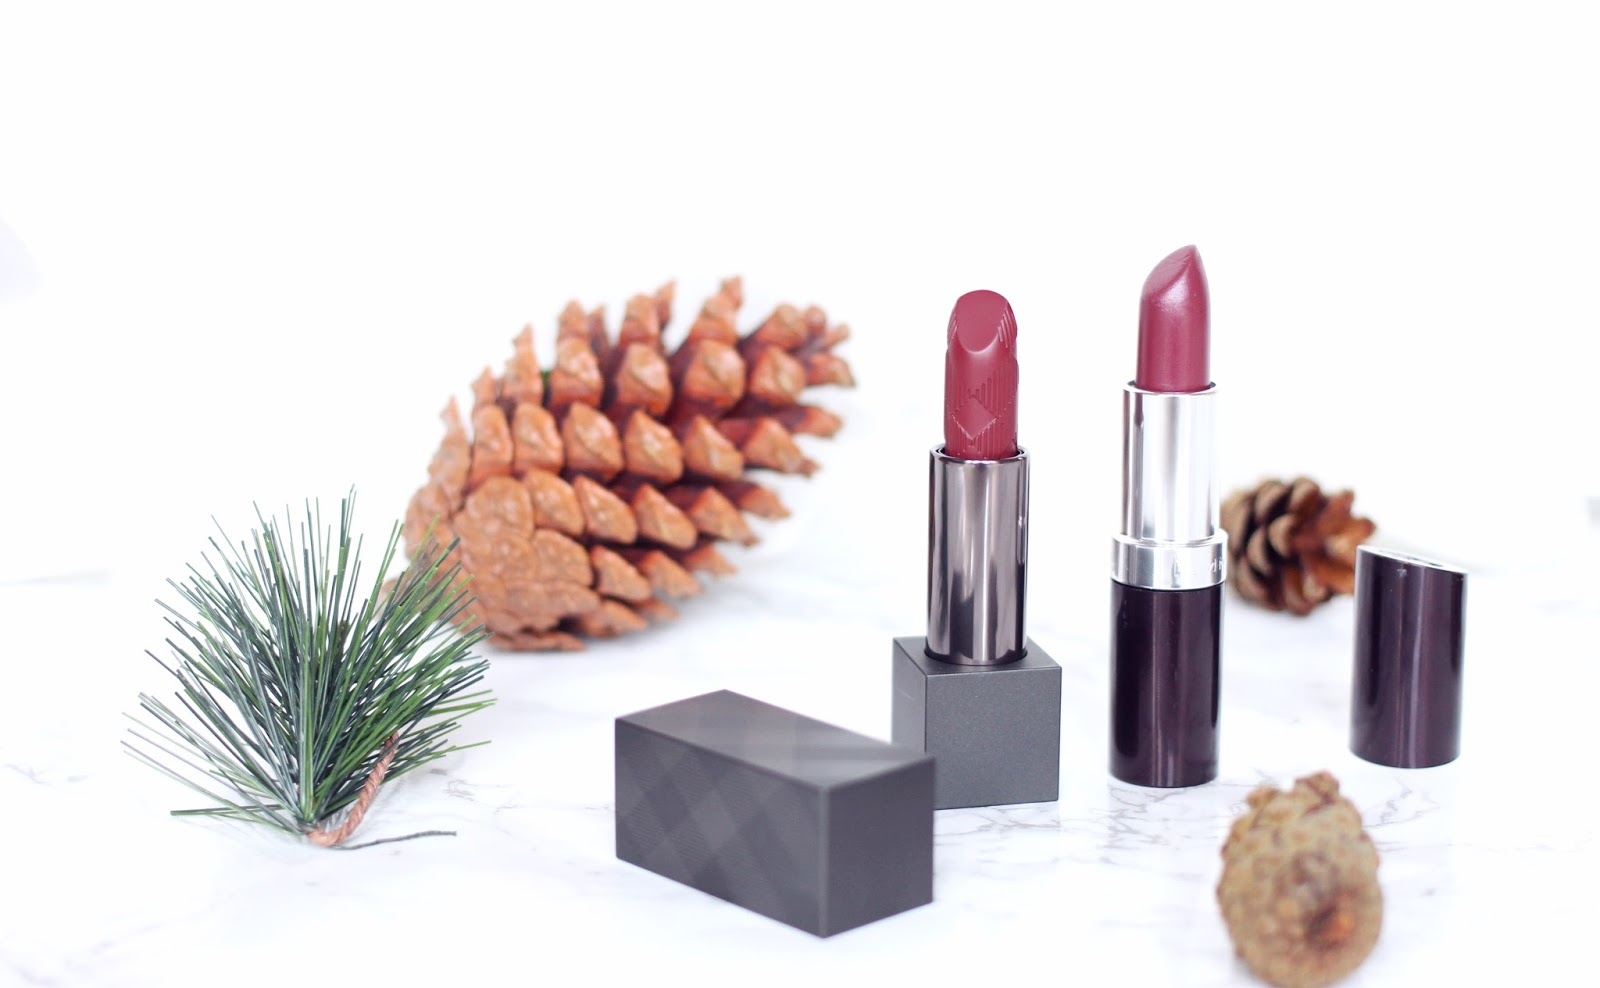 Burberry and Rimmel Plum Lipsticks